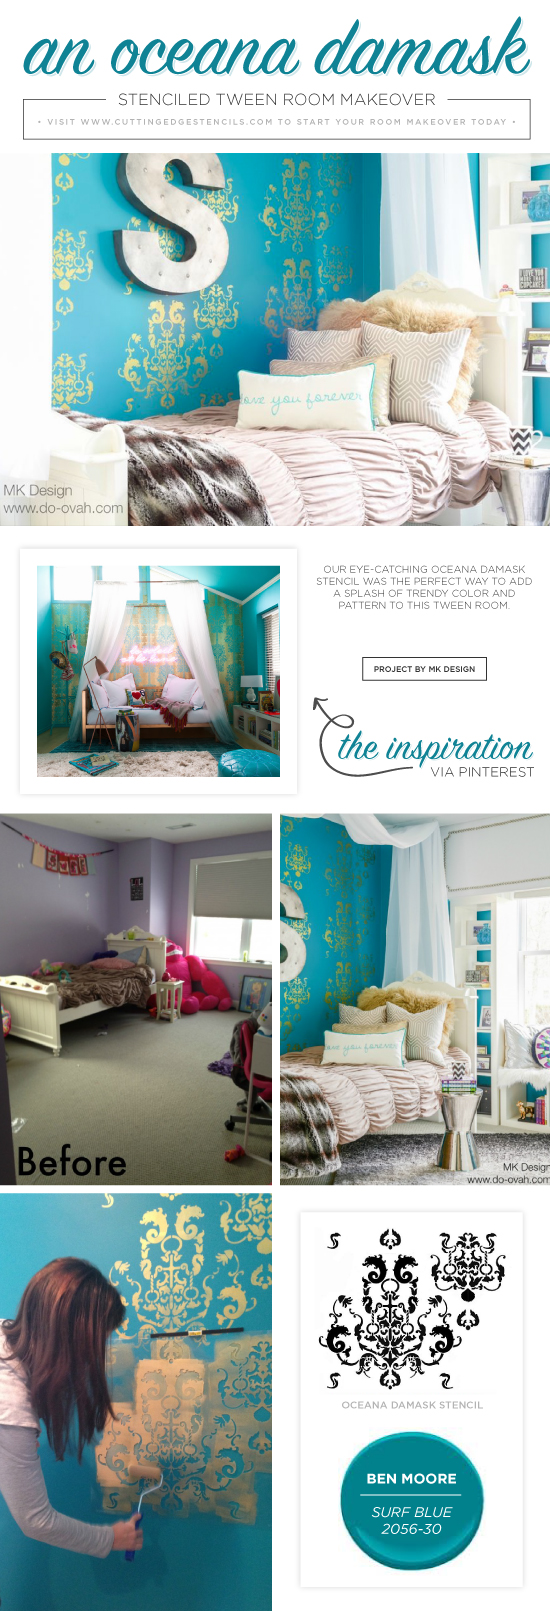 Cutting Edge Stencils shares a DIY stenciled tween bedroom using the Oceana Damask Stencil in teal and metallic gold.  http://www.cuttingedgestencils.com/stencil-nautical-decor.html